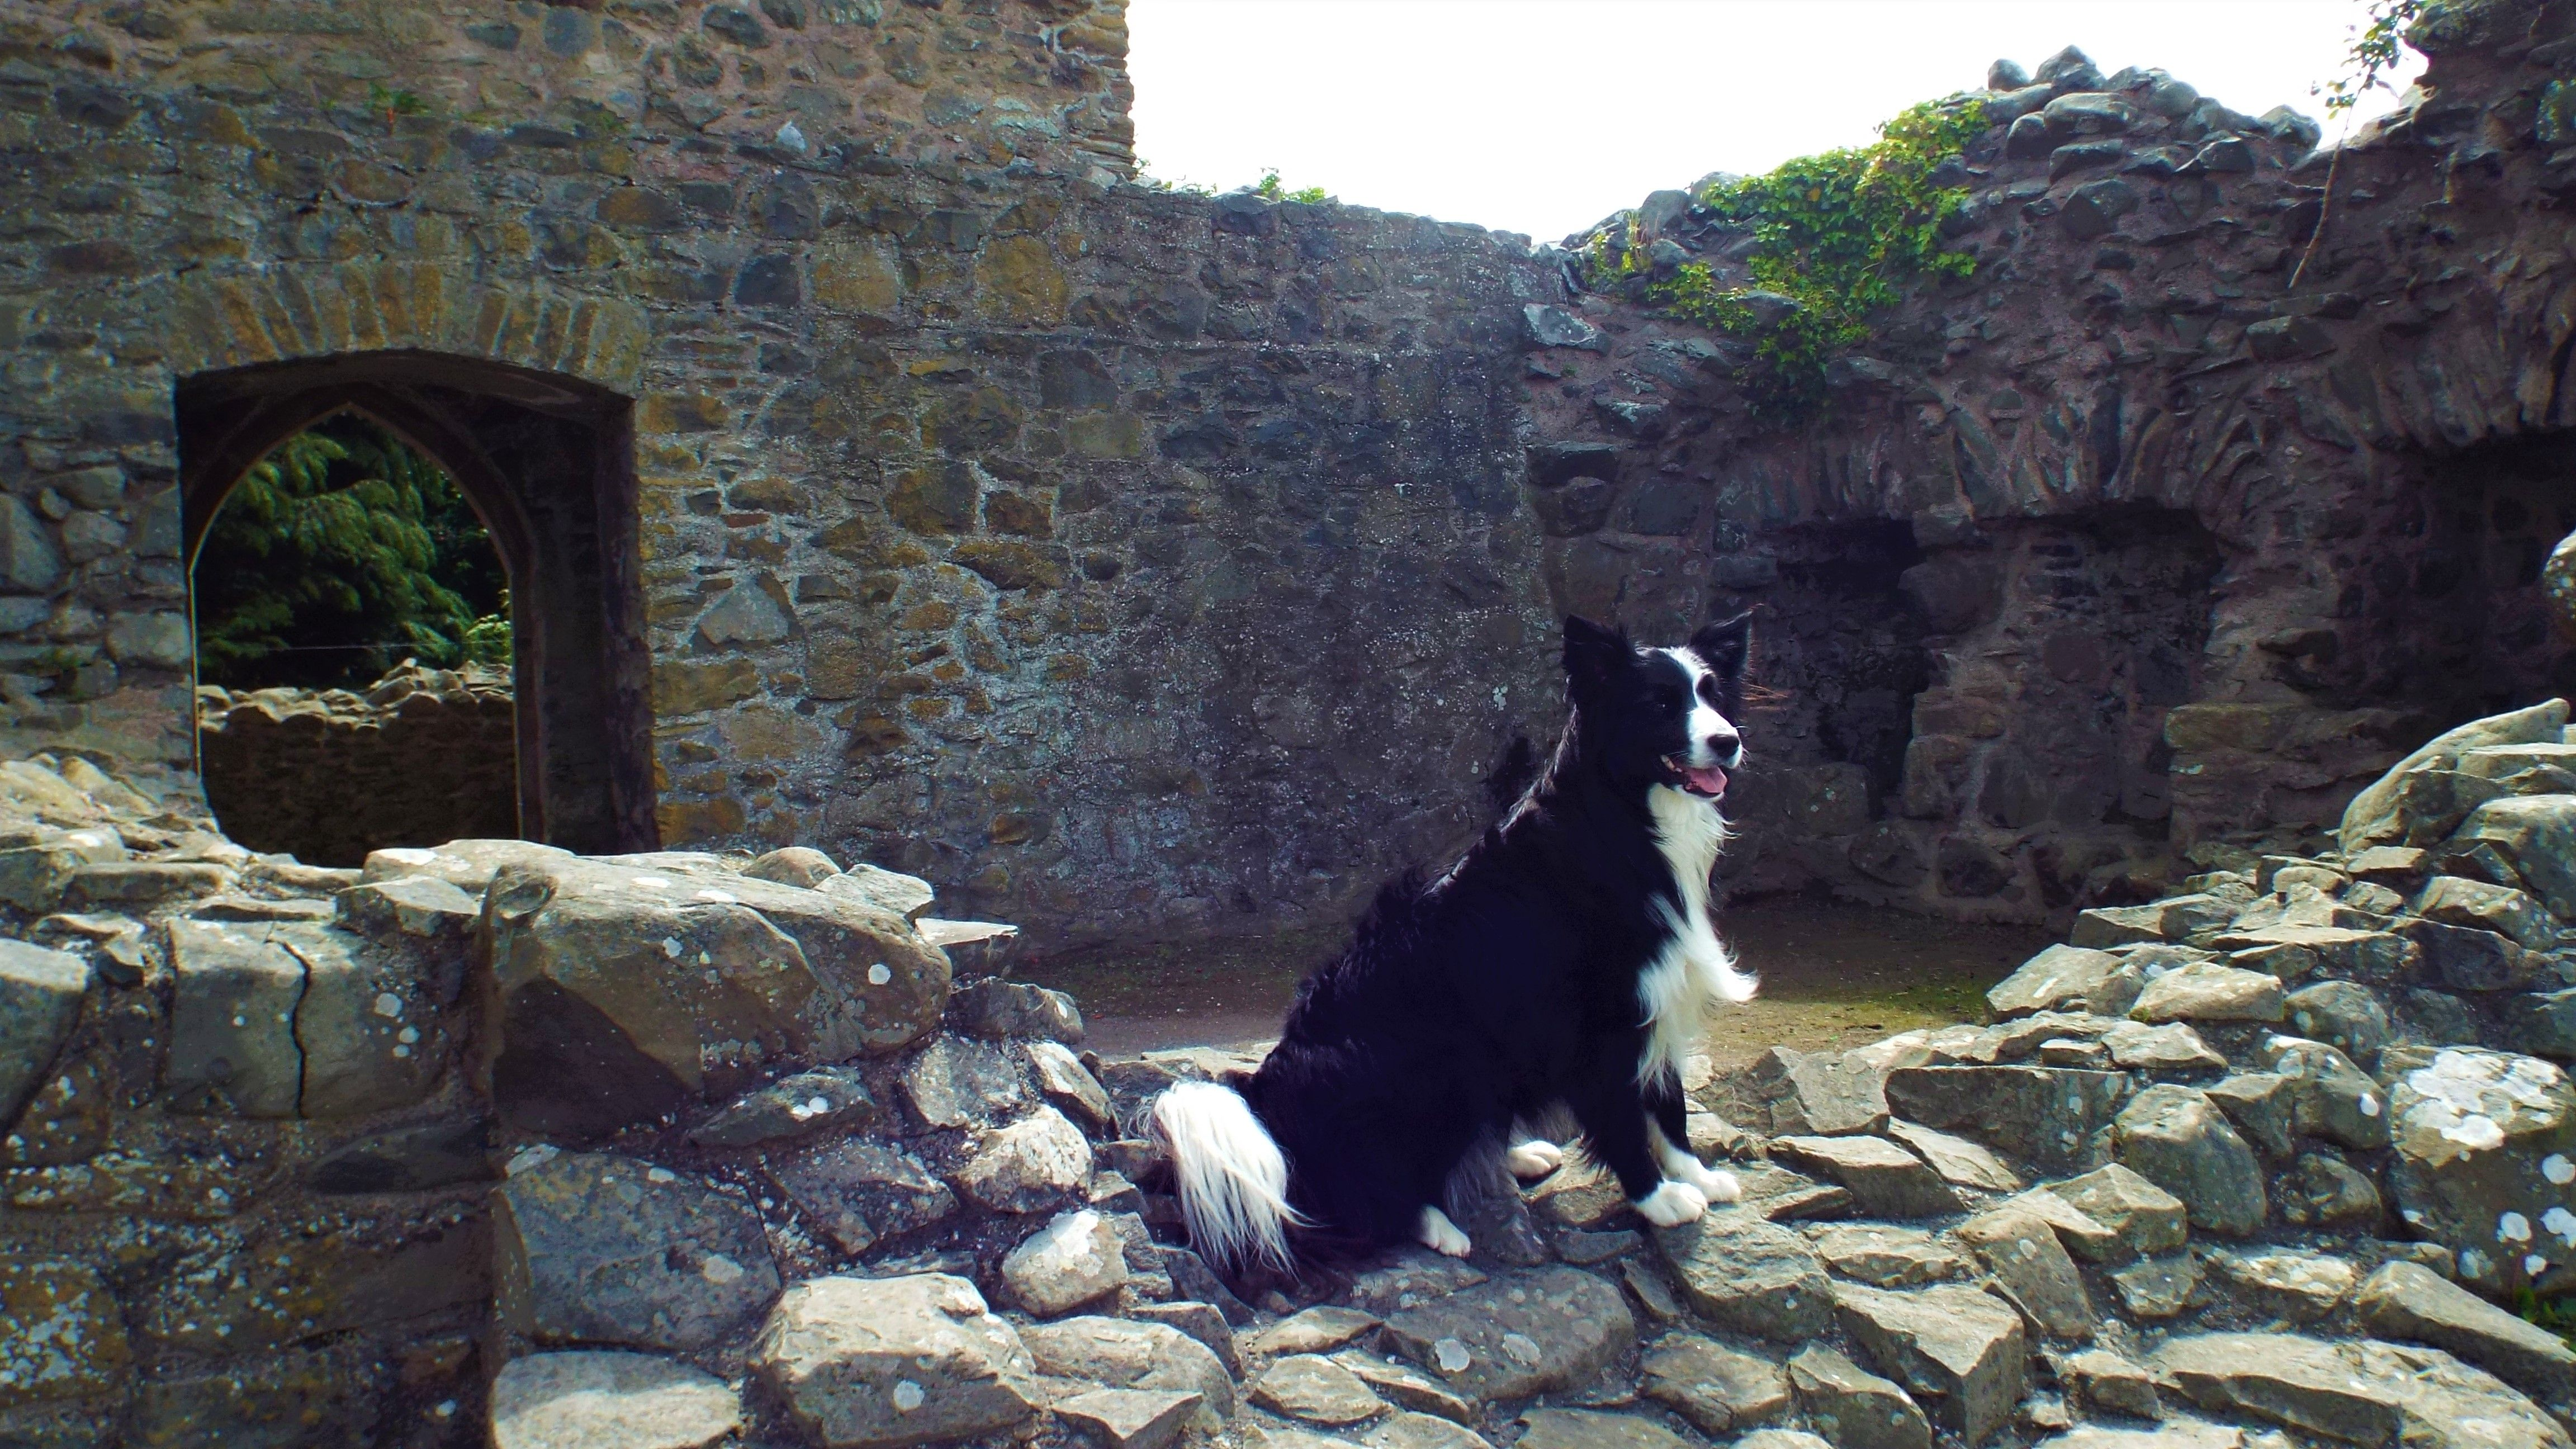 Sketrick Castle in Comber County Down, Northern Ireland.  Asha the star of County Down was here...